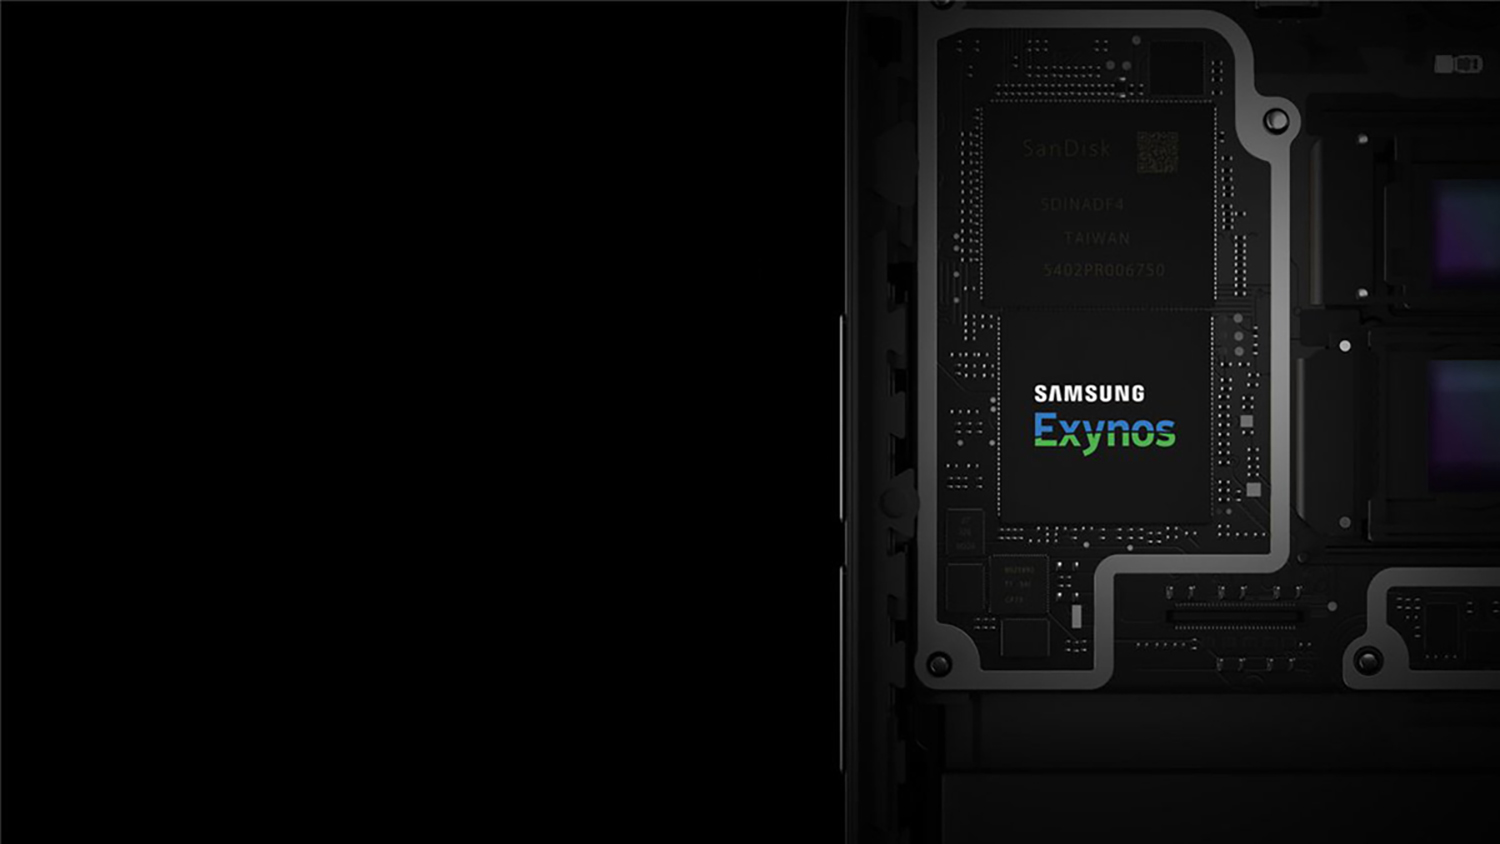 Samsung to Bring Its Exynos Chipsets to Computers in the Future, According to Tipster - Wccftech